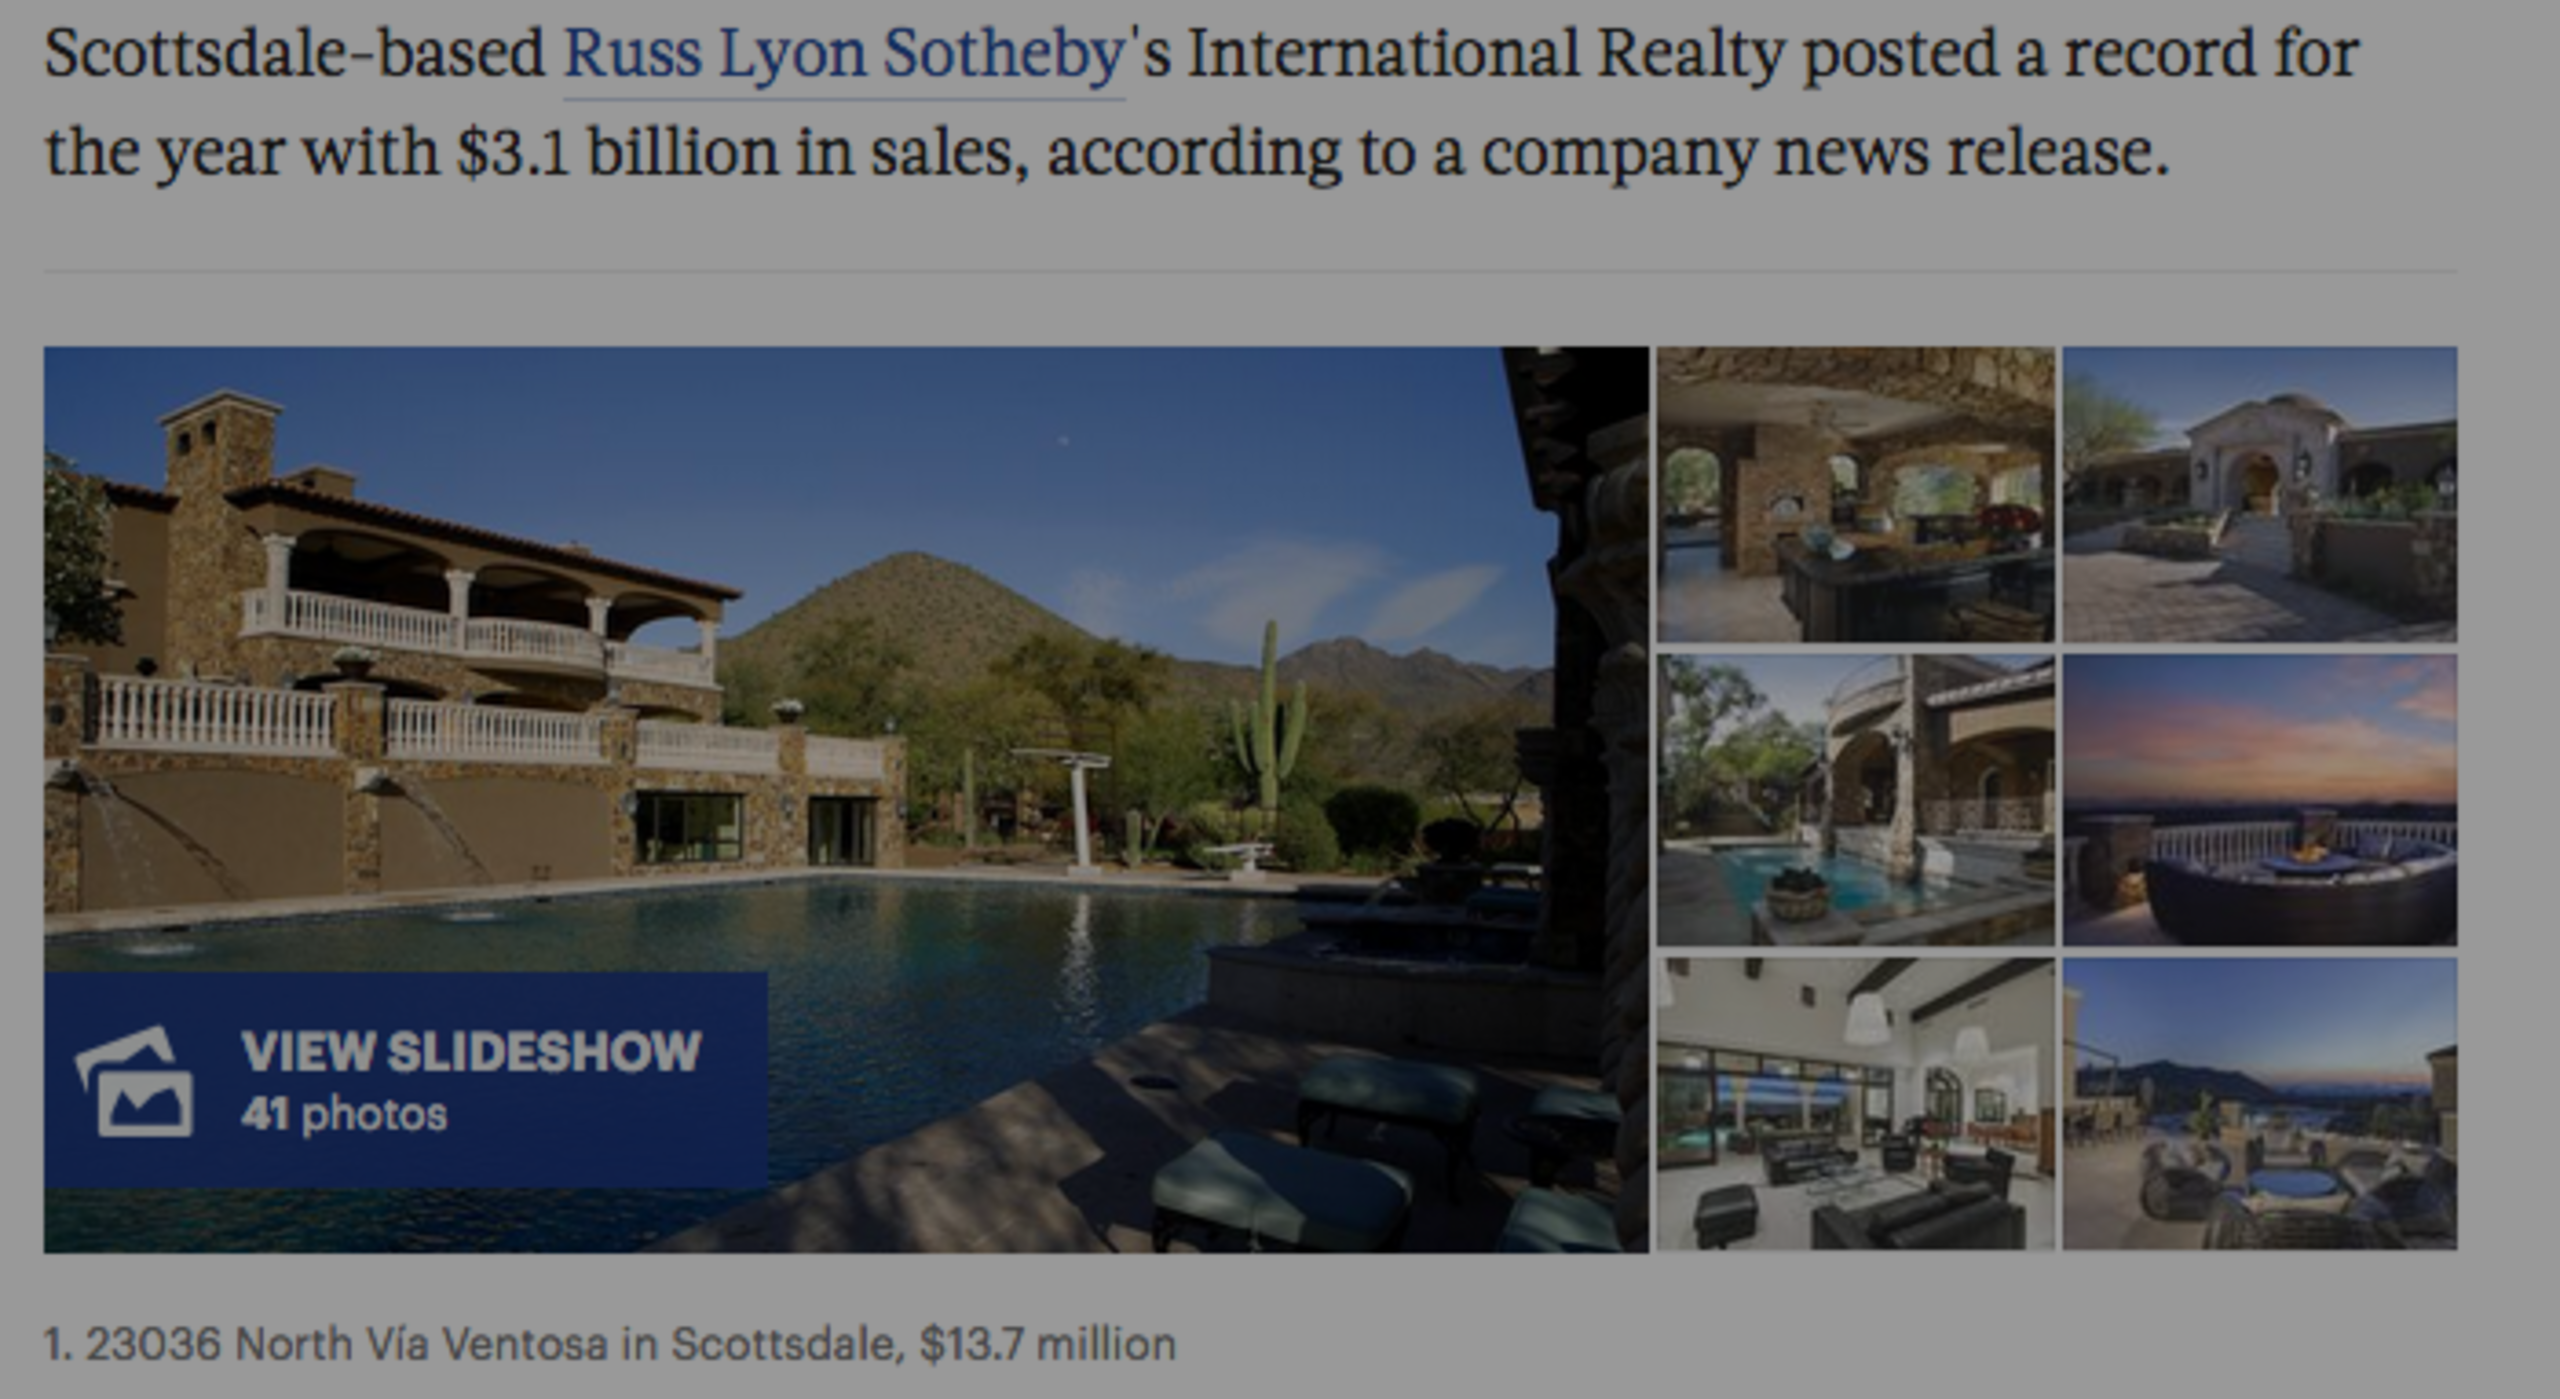 Scottsdale Based Russ Lyon Sothebys Posted record 16 sales for 2016